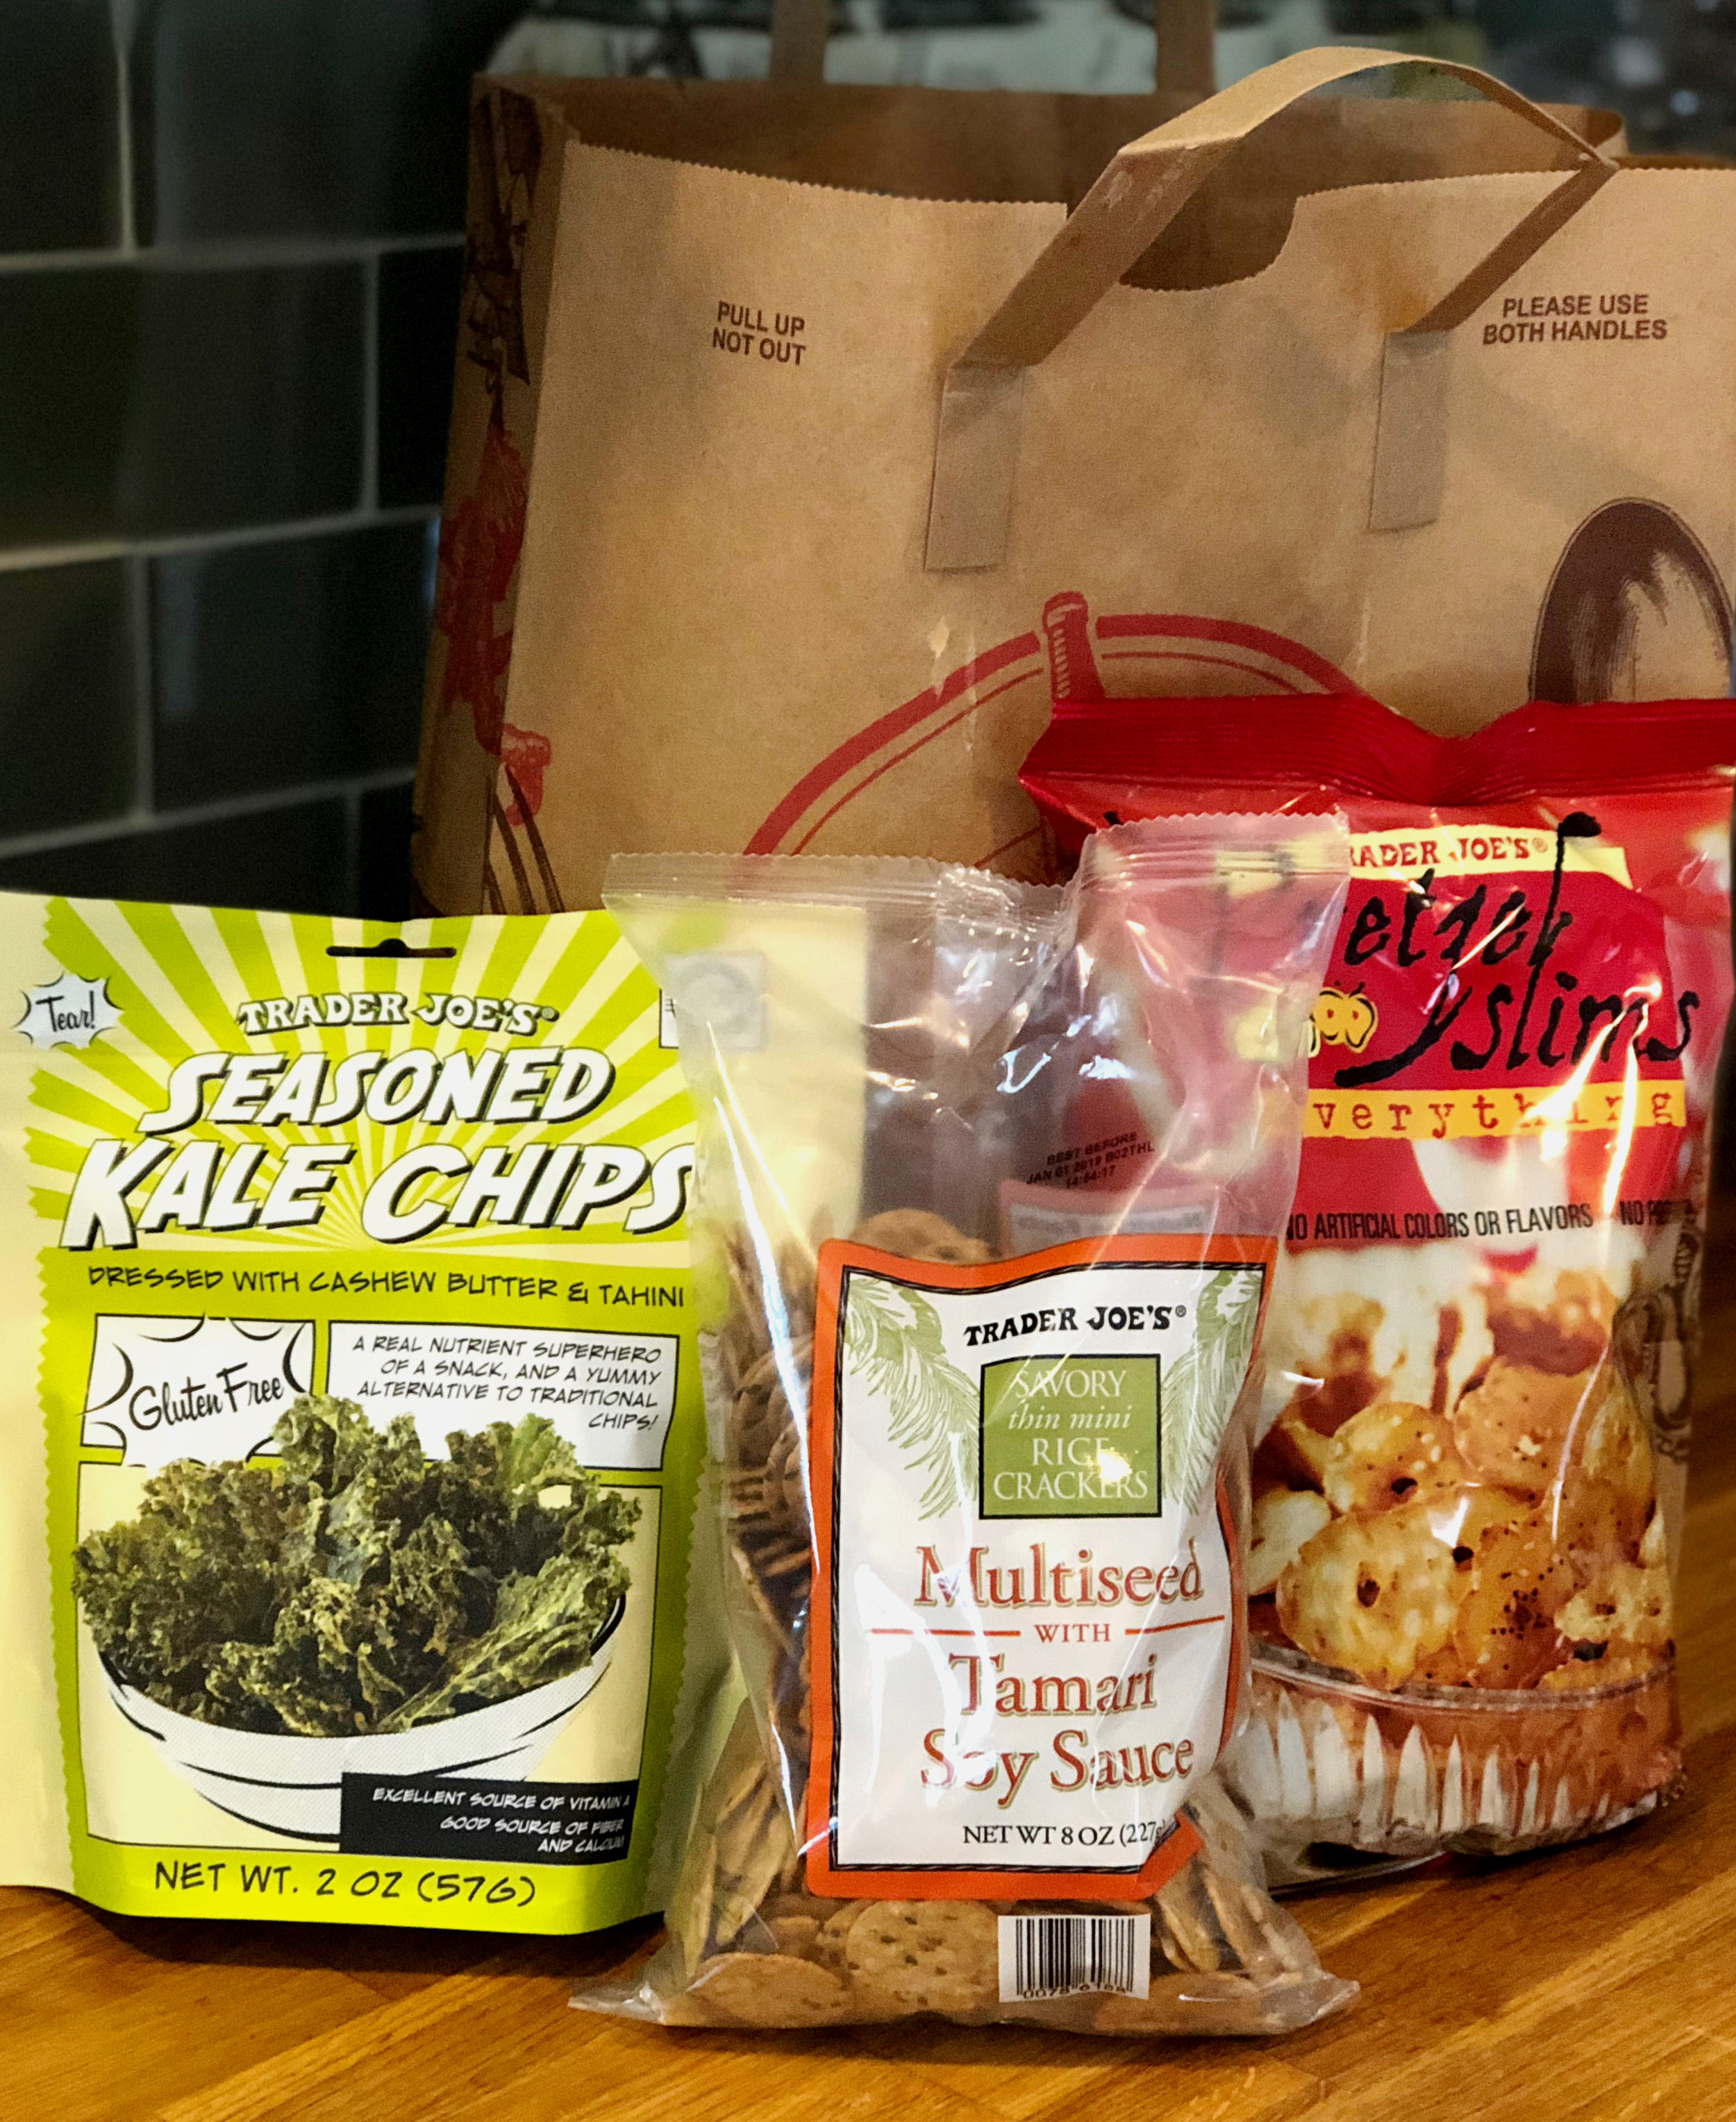 For our Trader Joe's summer shopping list - CLICK HERE